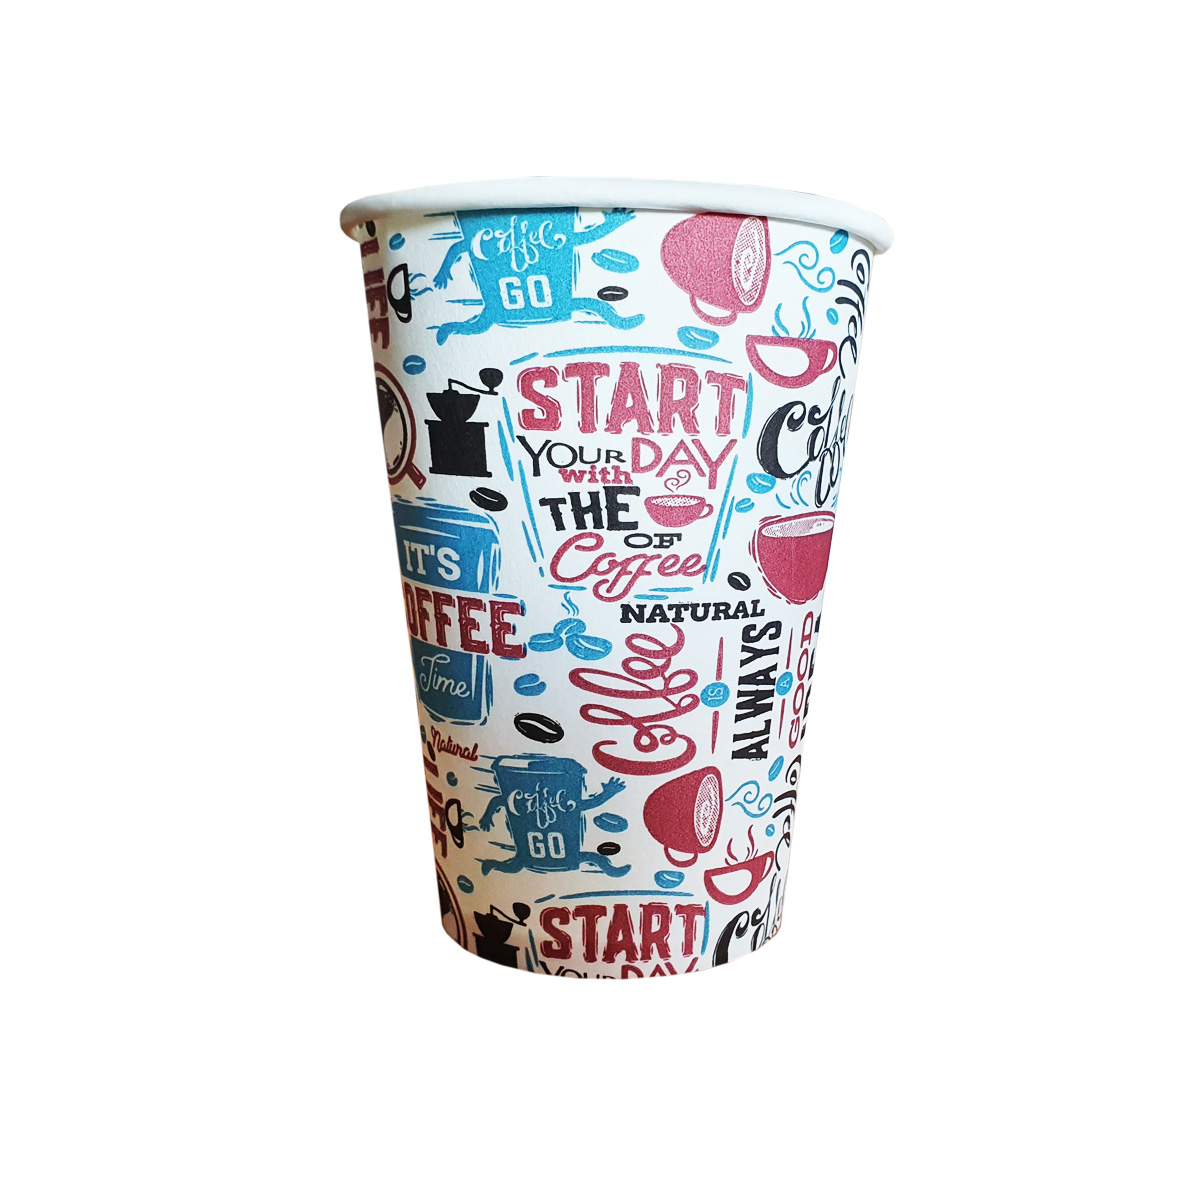 Start pahare carton 180ml bax 1500 buc